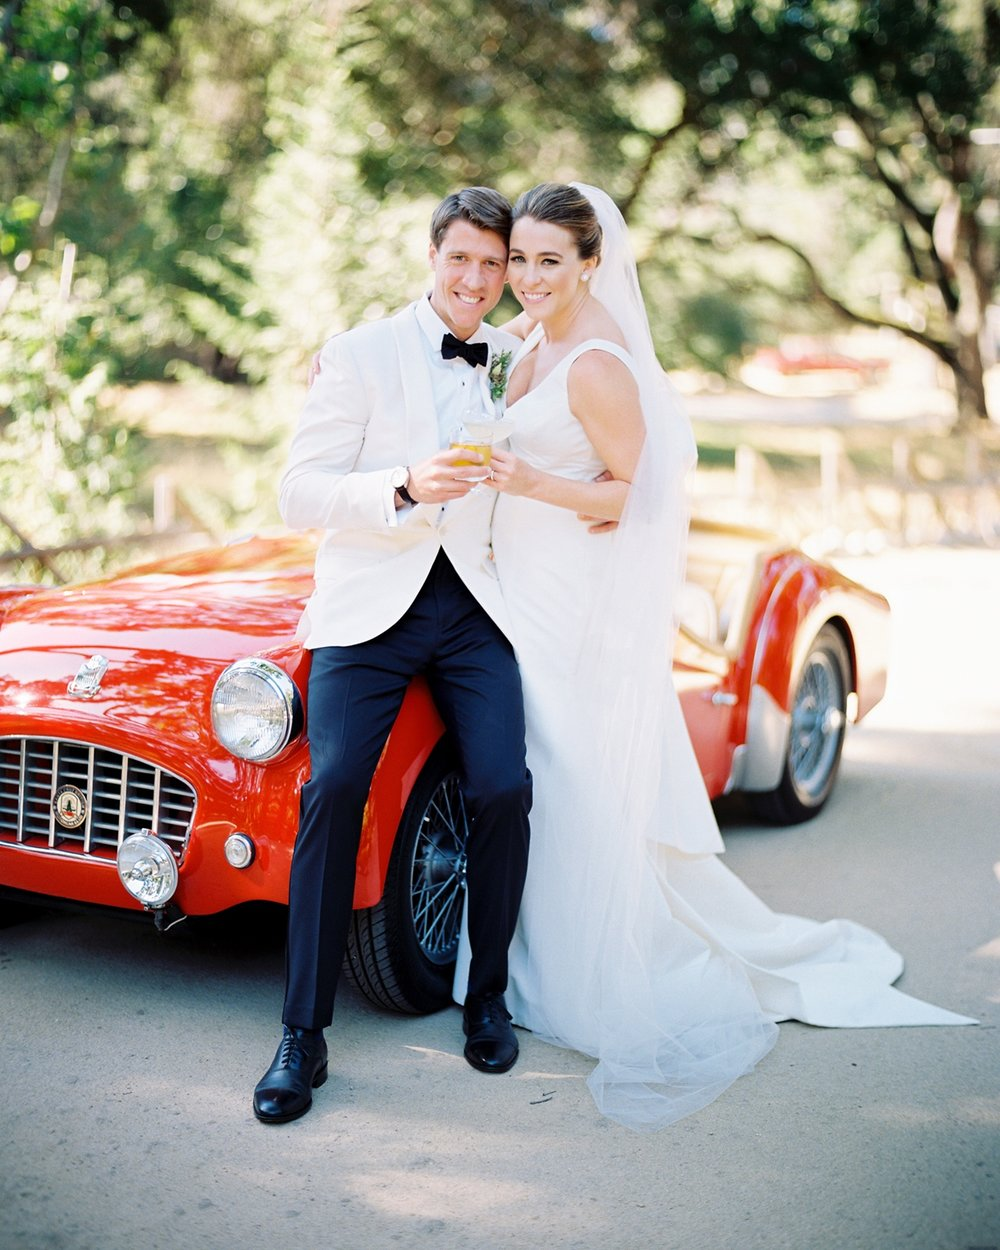 Brauer+-+Bride+%26+Groom+004.jpg